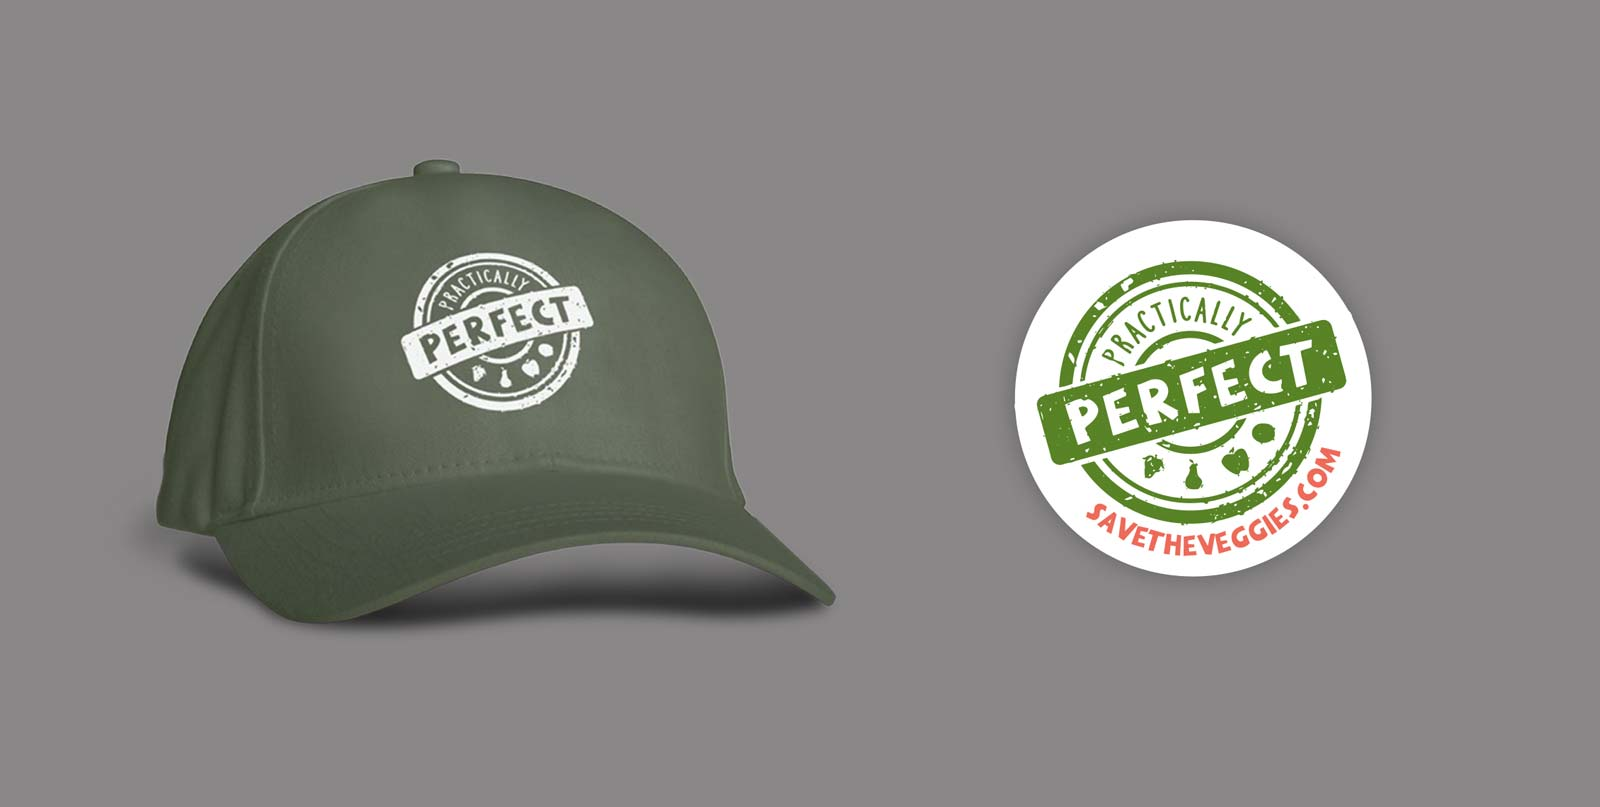 Practically Perfect brand stamp logo centered on a green hat and white circular sticker